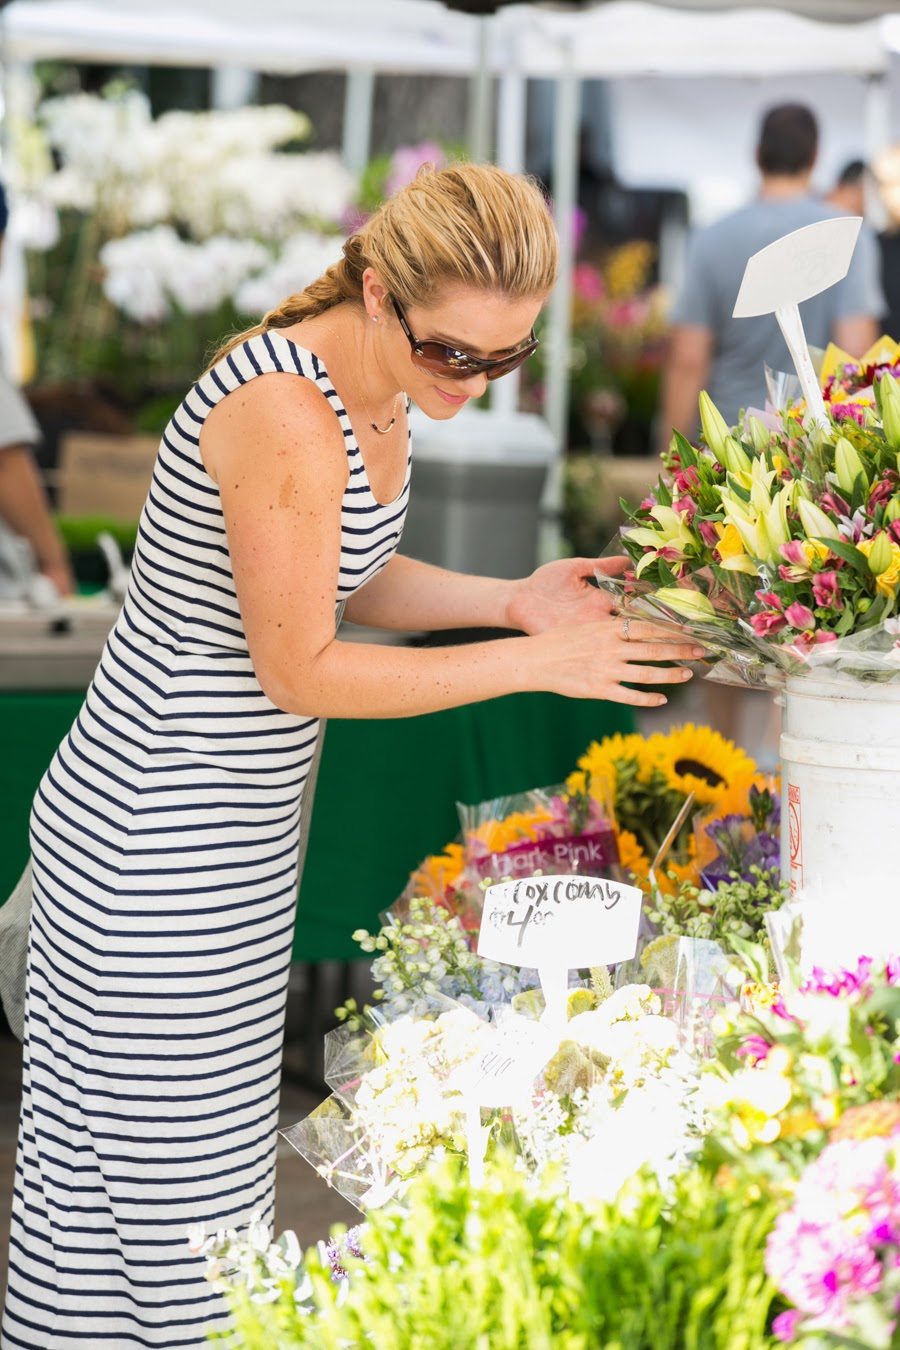 Striped Maxi and Sunflowers at Calabasas Farmer's Market | Luci's Morsels